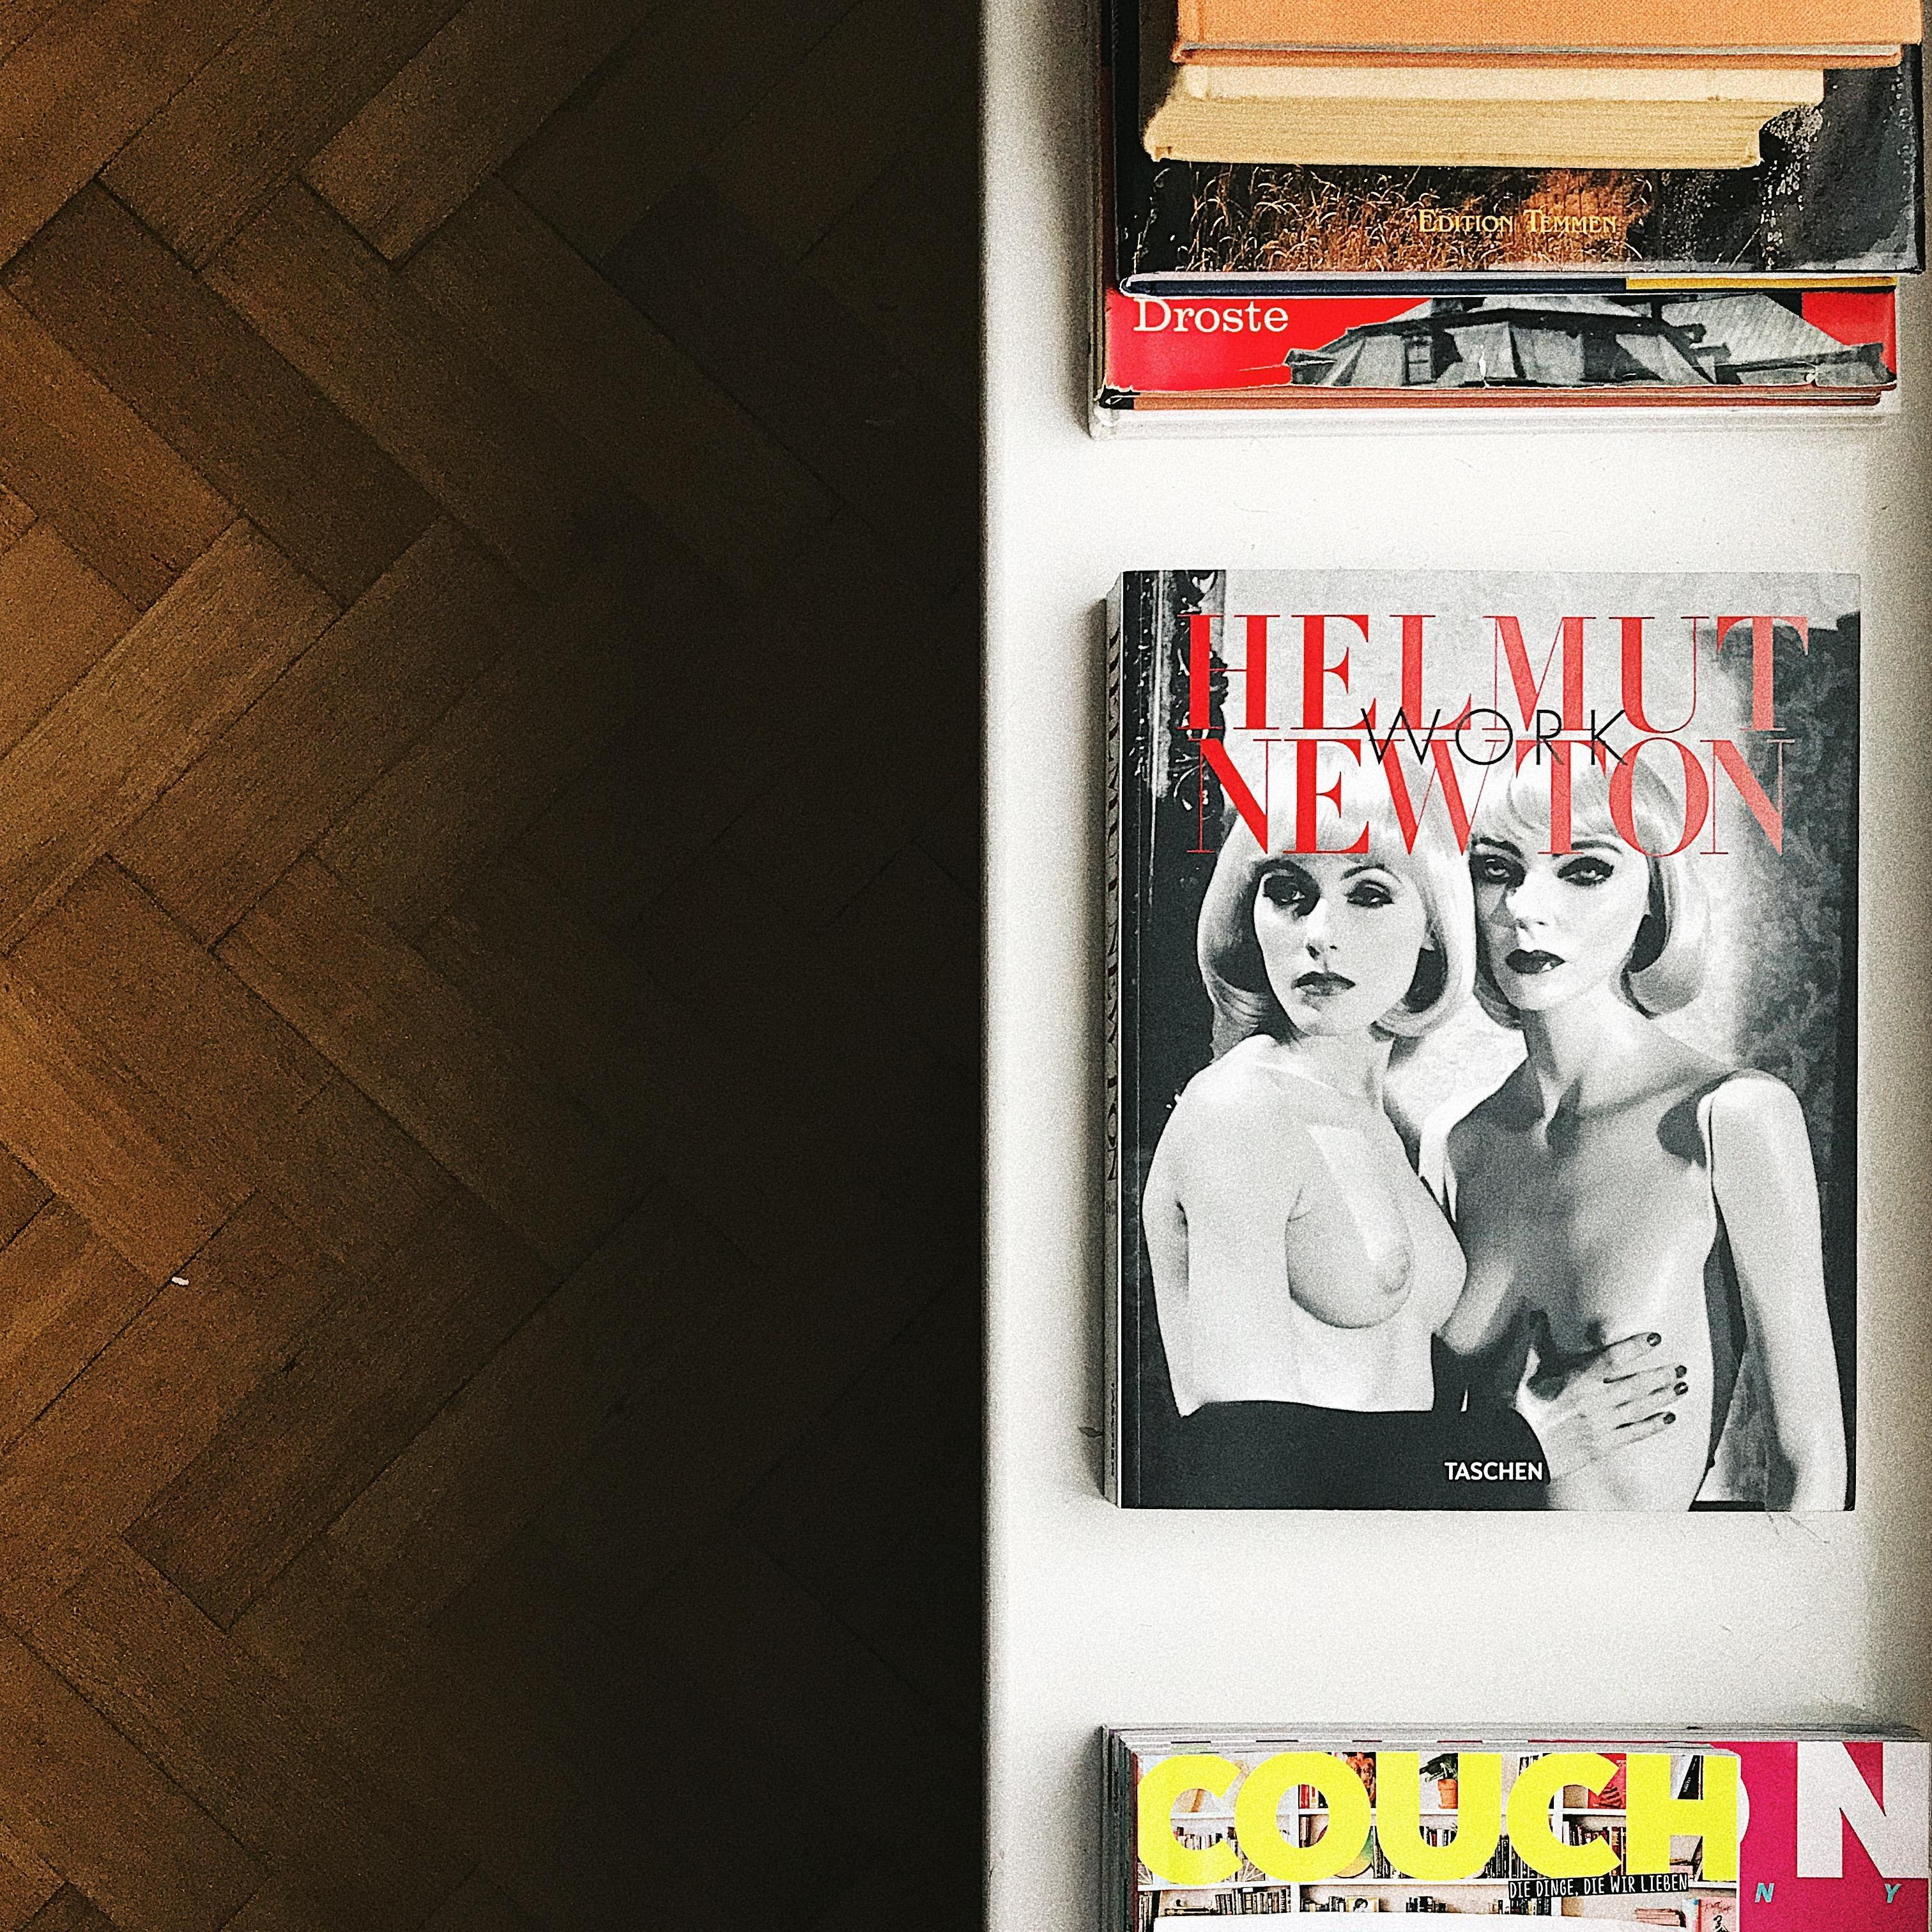 Coffeetable Books 🖤 #interior #home #hamburg #book